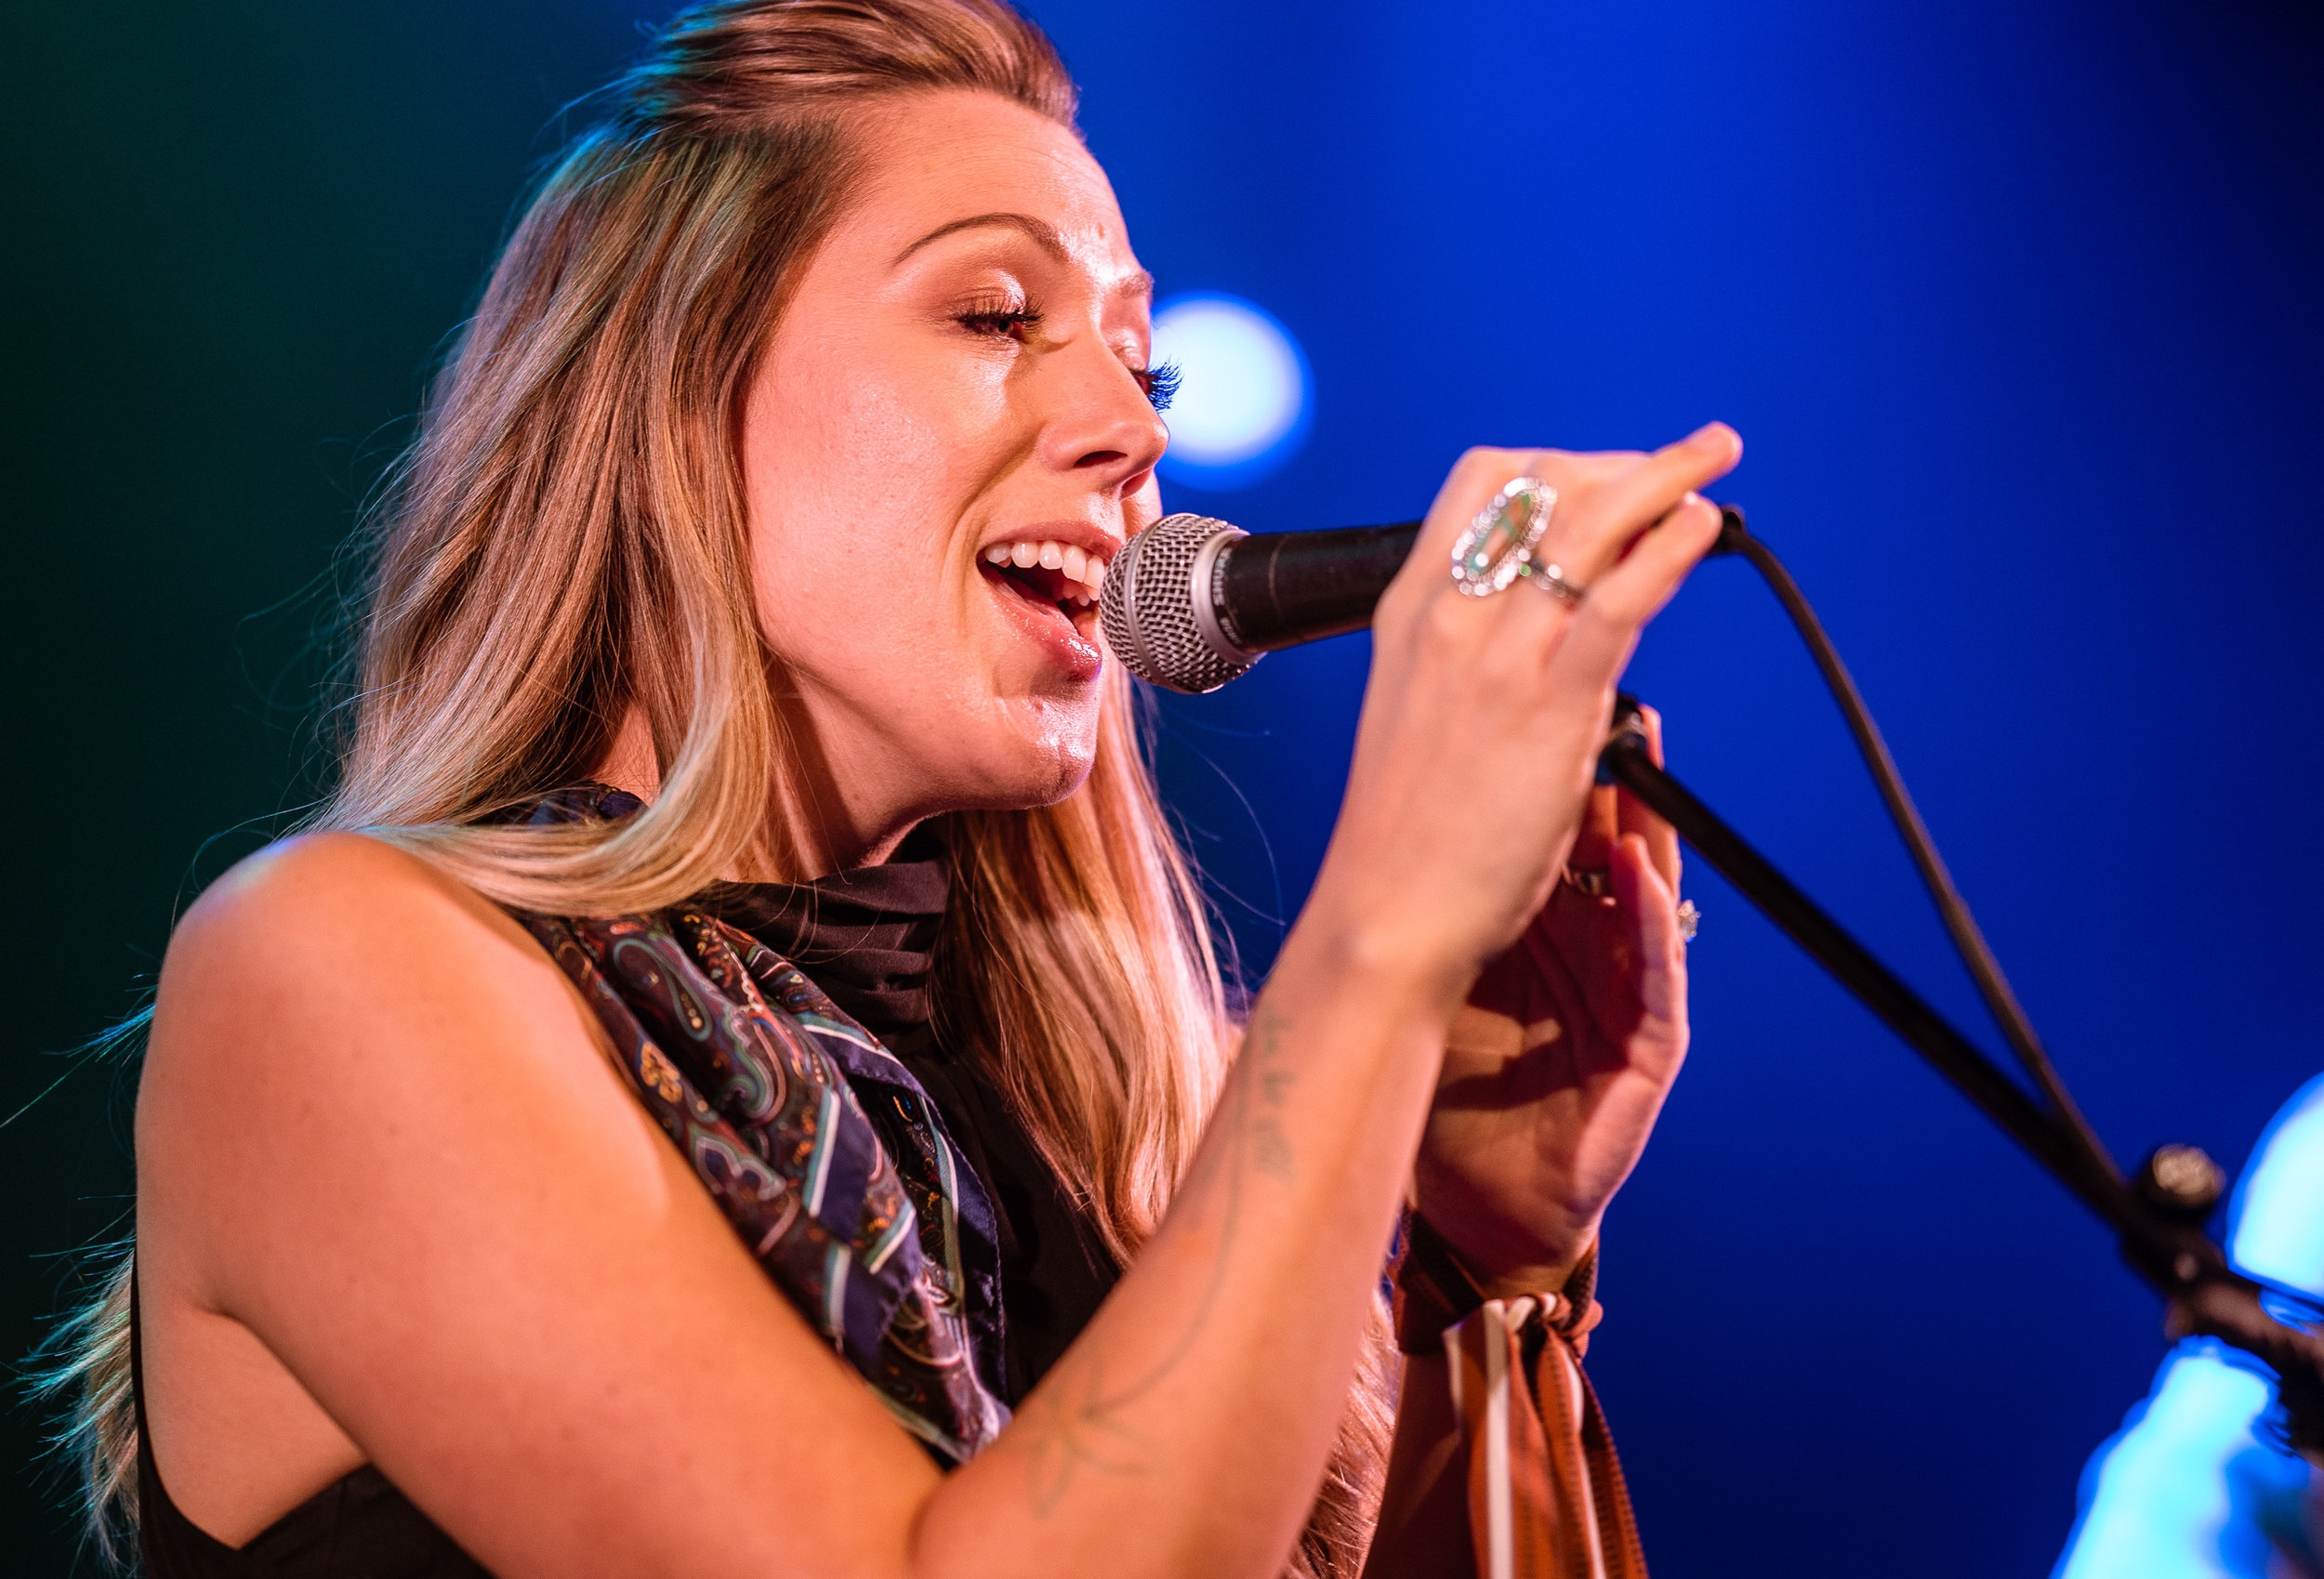 Colbie Caillat sings in her new band Gone West's debut performance at The Troubadour in West Hollywood, CA on Friday, May 10, 2019. Gone West is a new Nashville-based band featuring 2-Time Grammy Award Winner Colbie Caillat, multi-platinum singer/songwriter Jason Reeves, 4-time Hawaii Music Award Winner Justin Kawika Young and ACM and CMT nominated artist Nelly Joy. (Glenn Zucman/The Corsair)